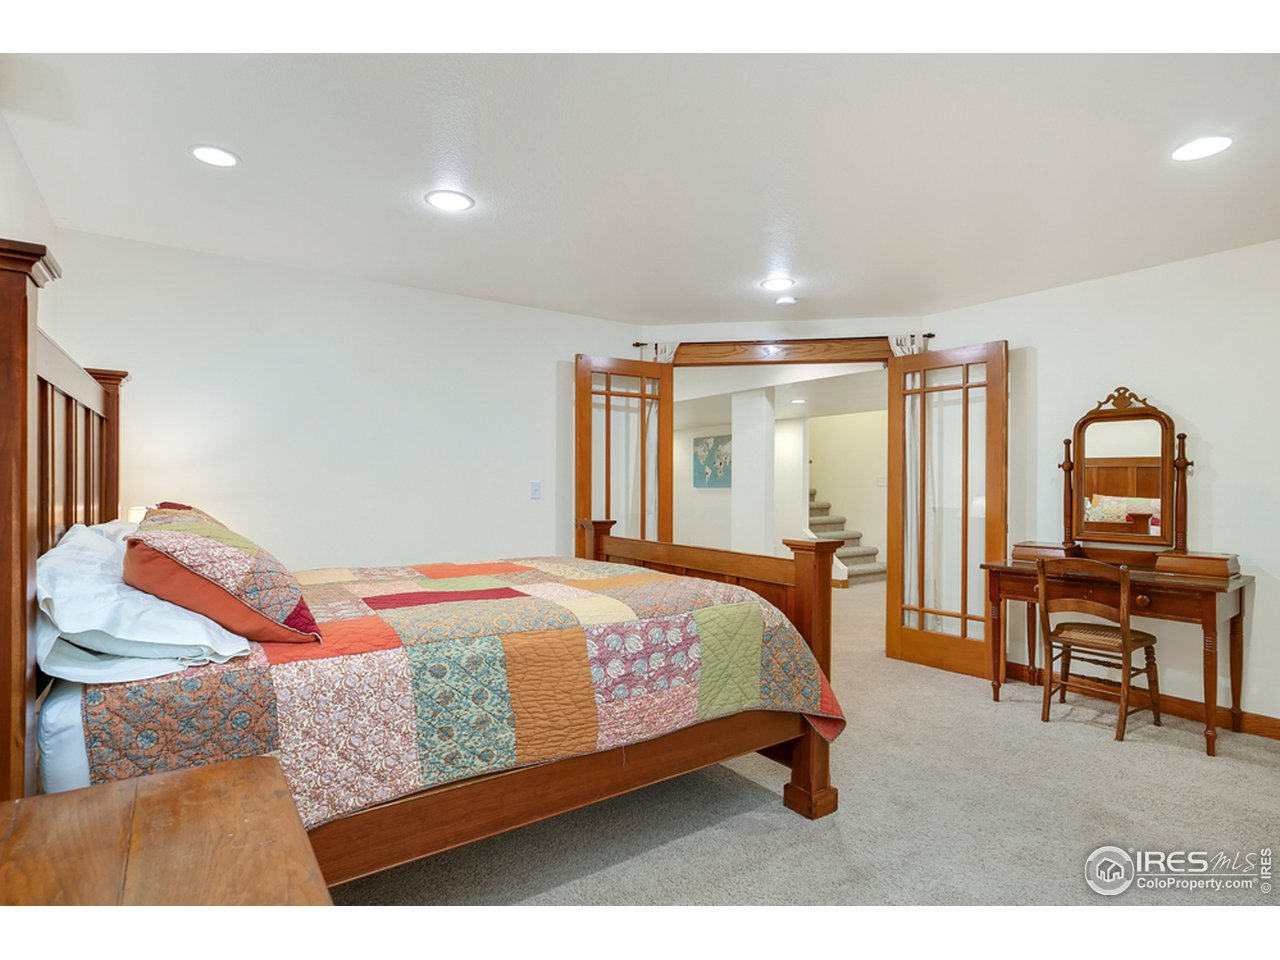 4th bedroom in basement features beautiful french doors and huge walk in closet